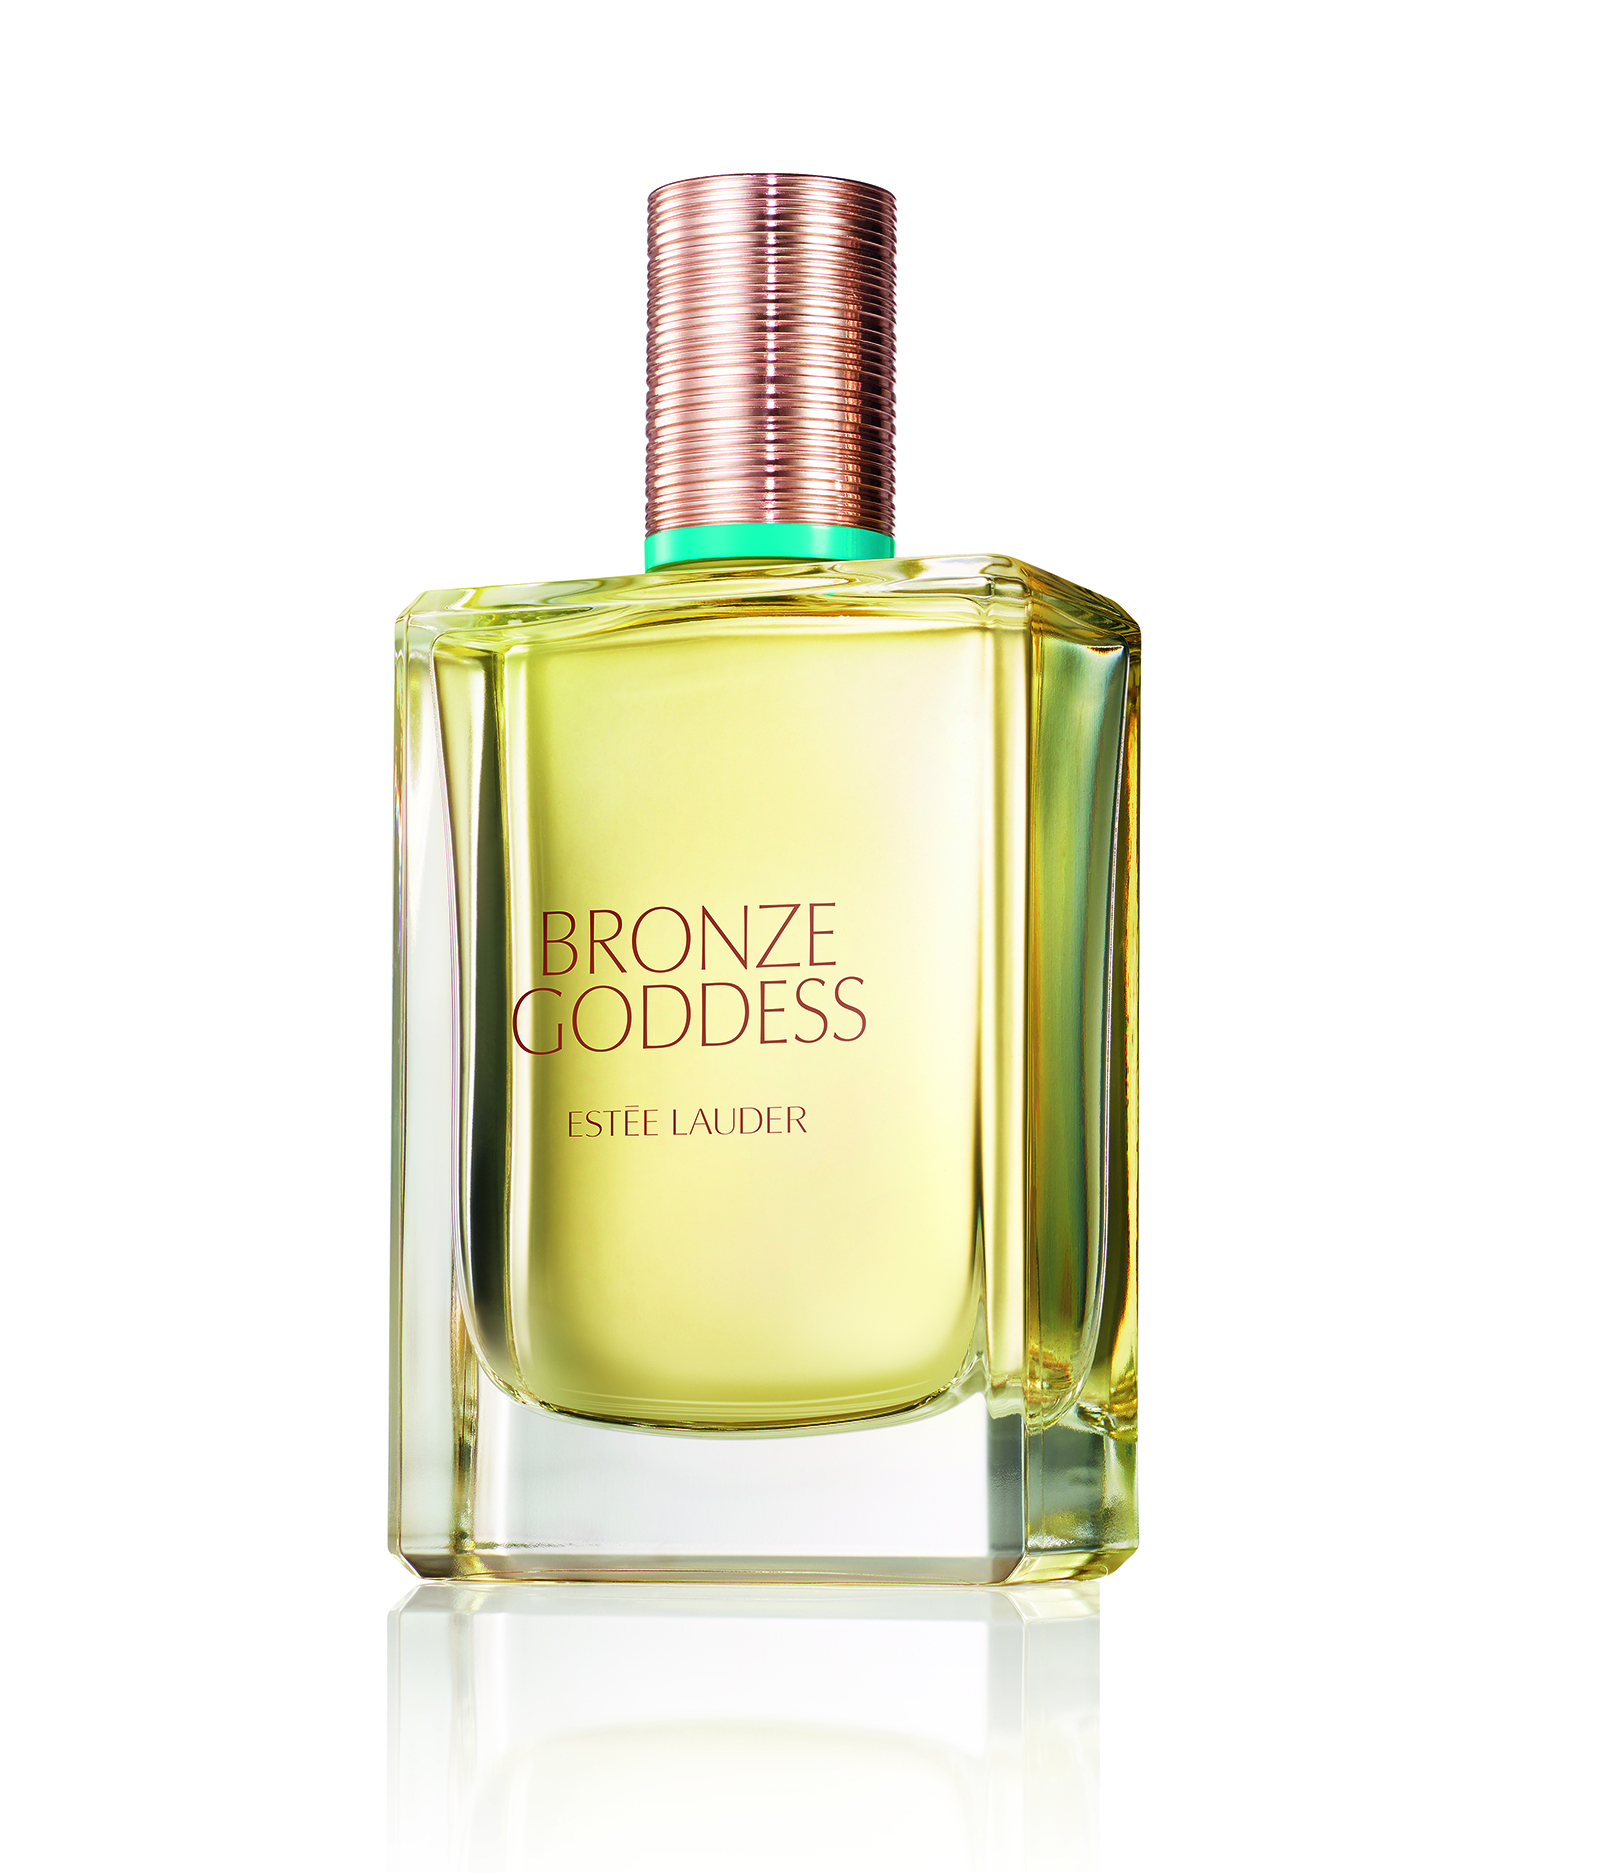 bronze-goddess_product-on-white_eau-fraiche_global_expiry-march-20181.jpg